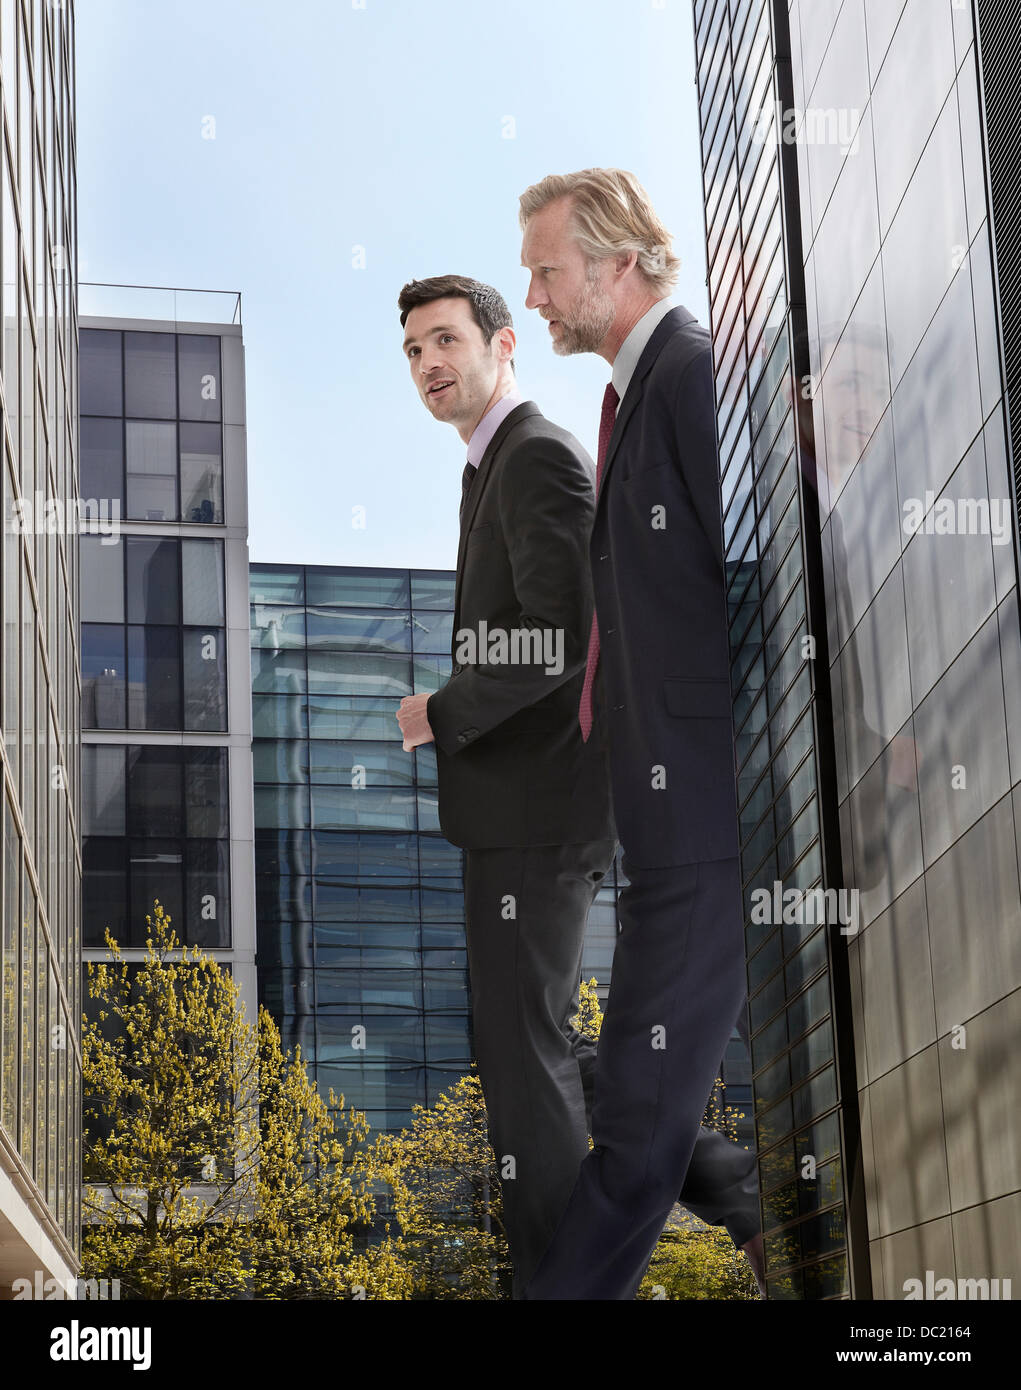 Oversized businessmen walking amongst skyscrapers, low angle view - Stock Image